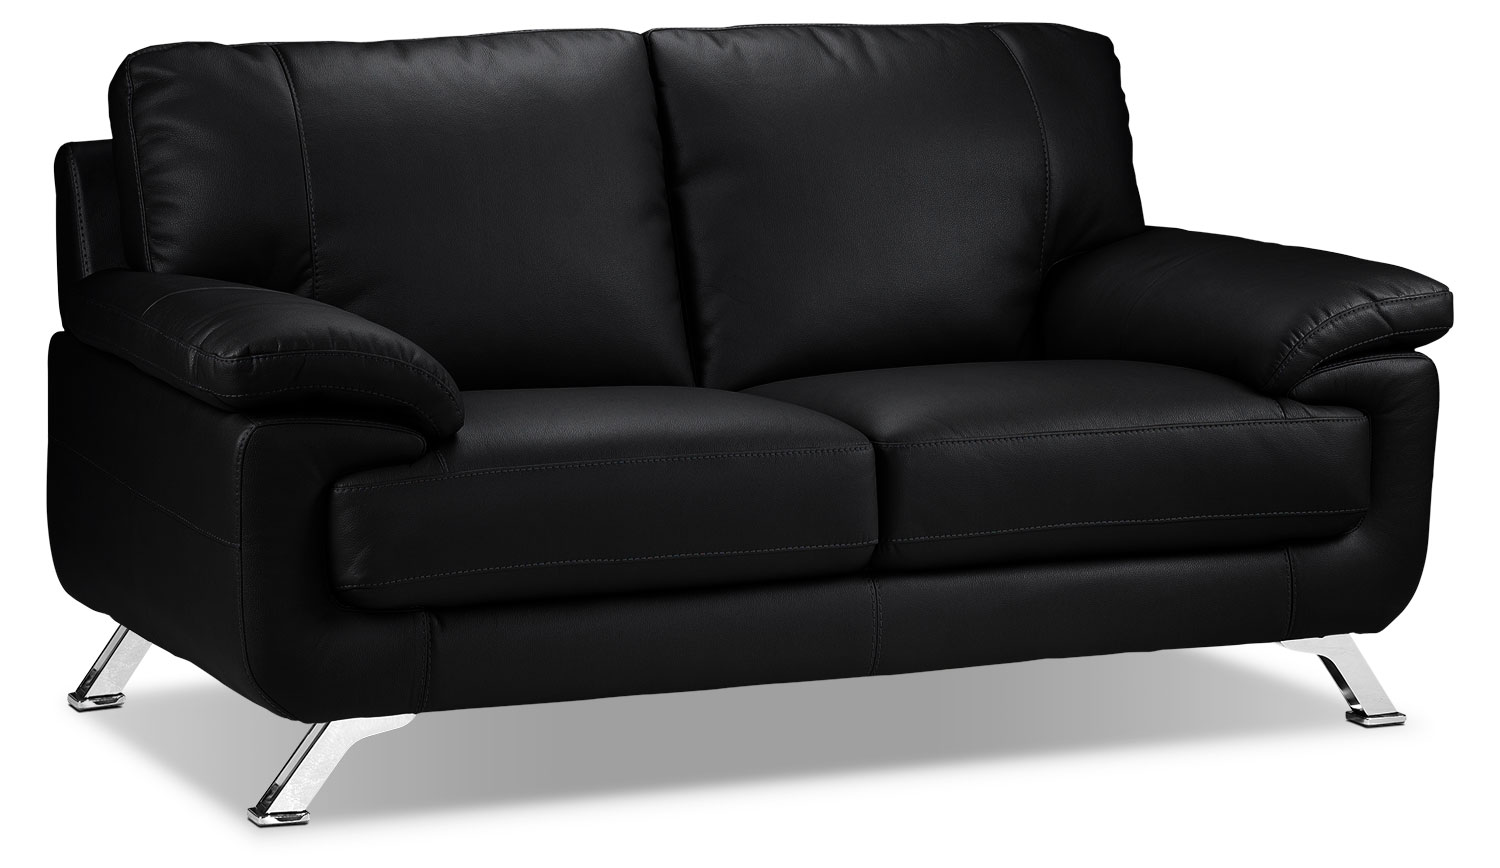 Infinity Loveseat - Black